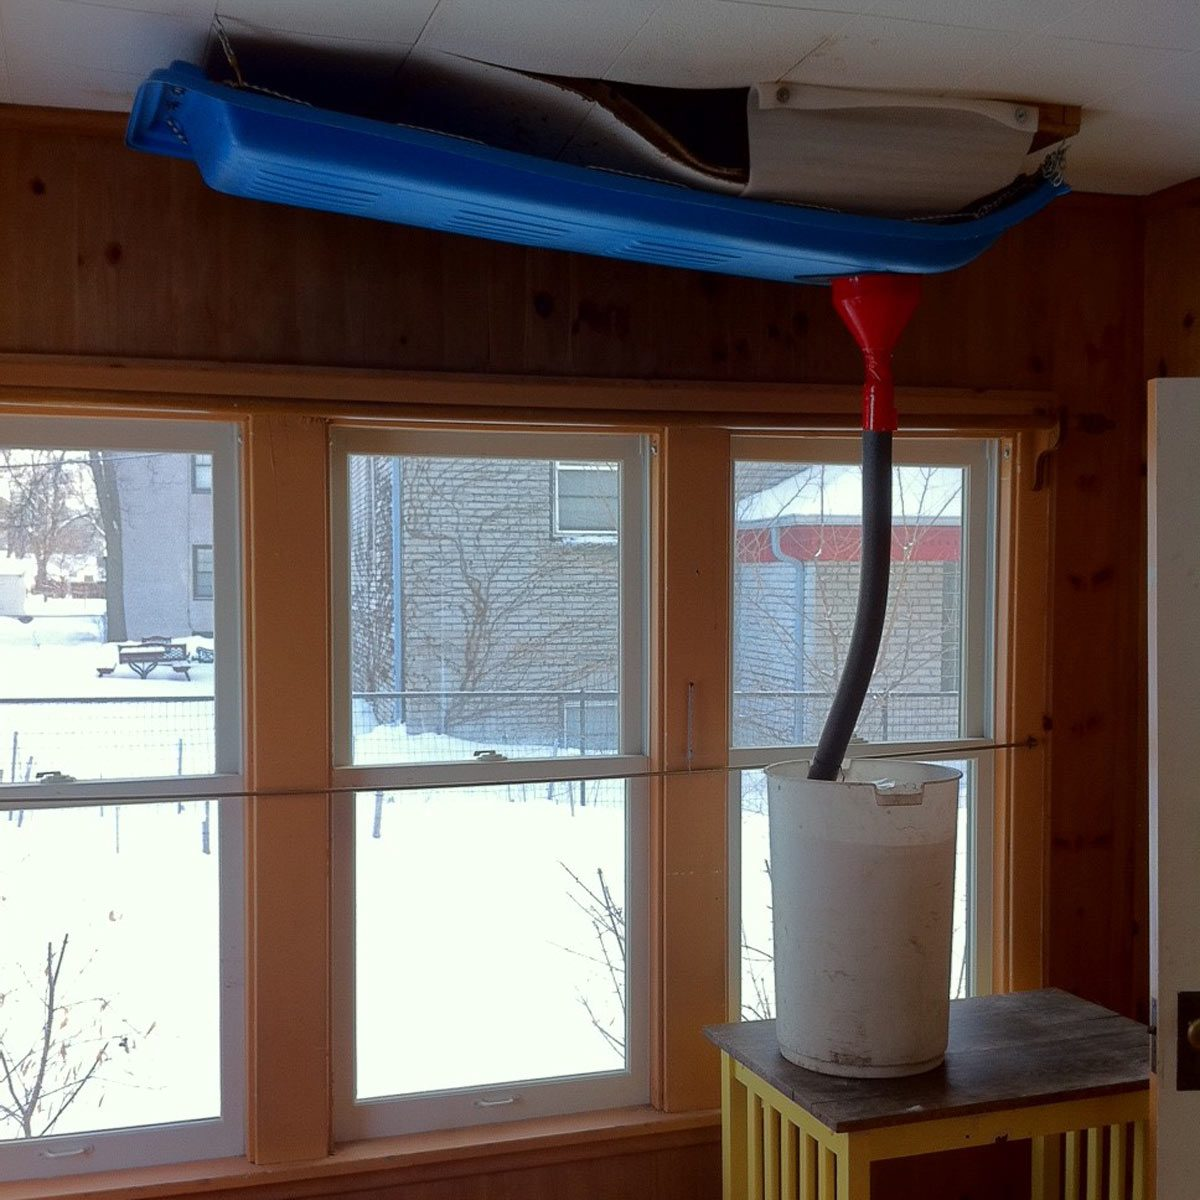 Toboggan ice-dam solution